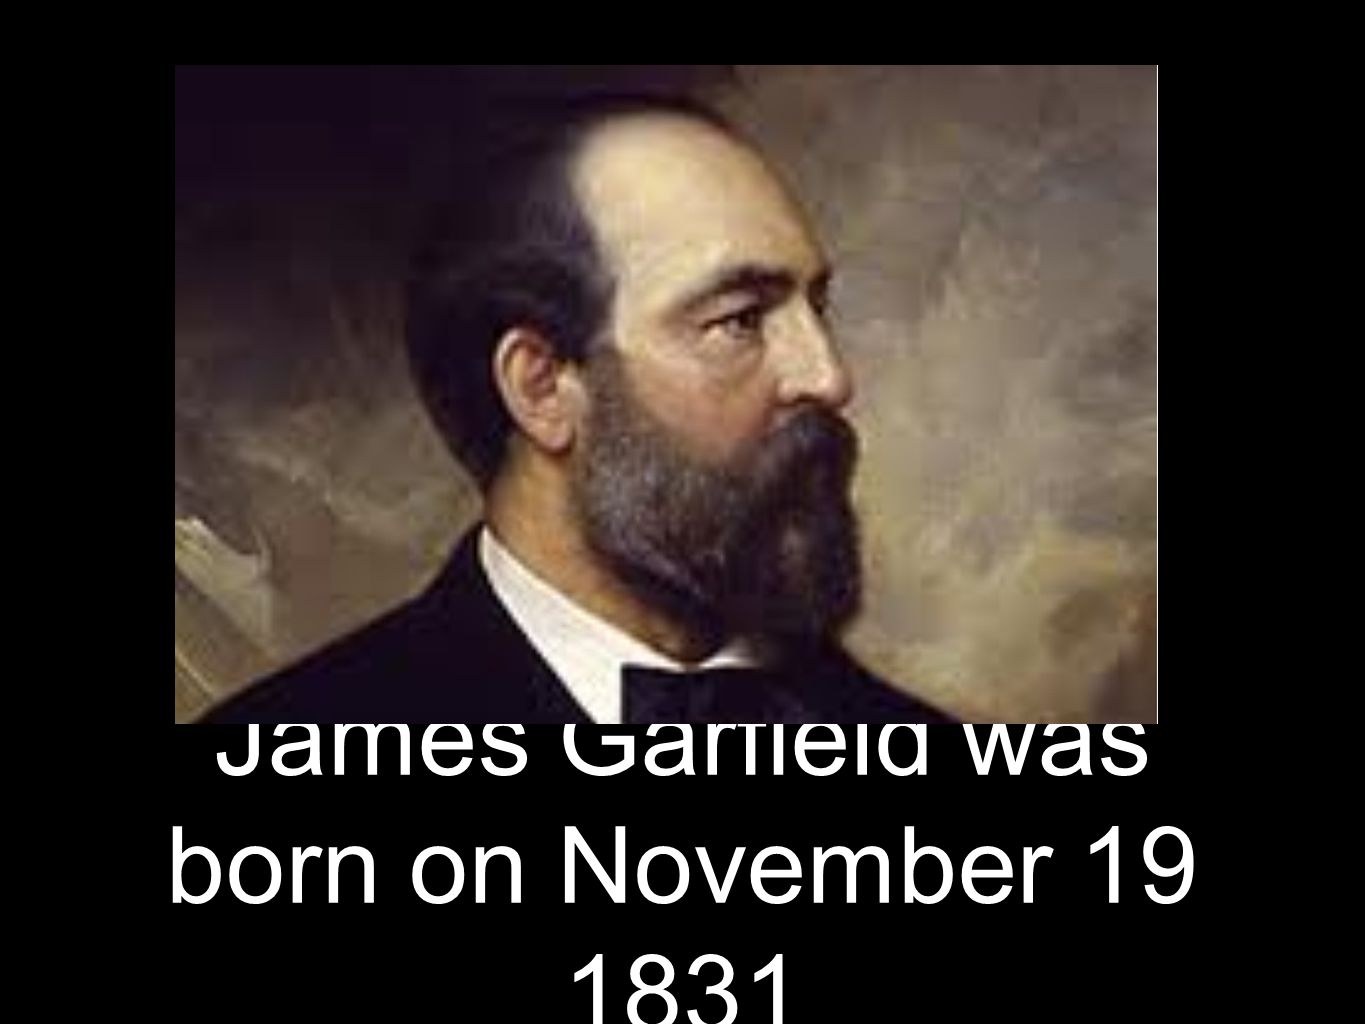 James Garfield was born on November 19 1831